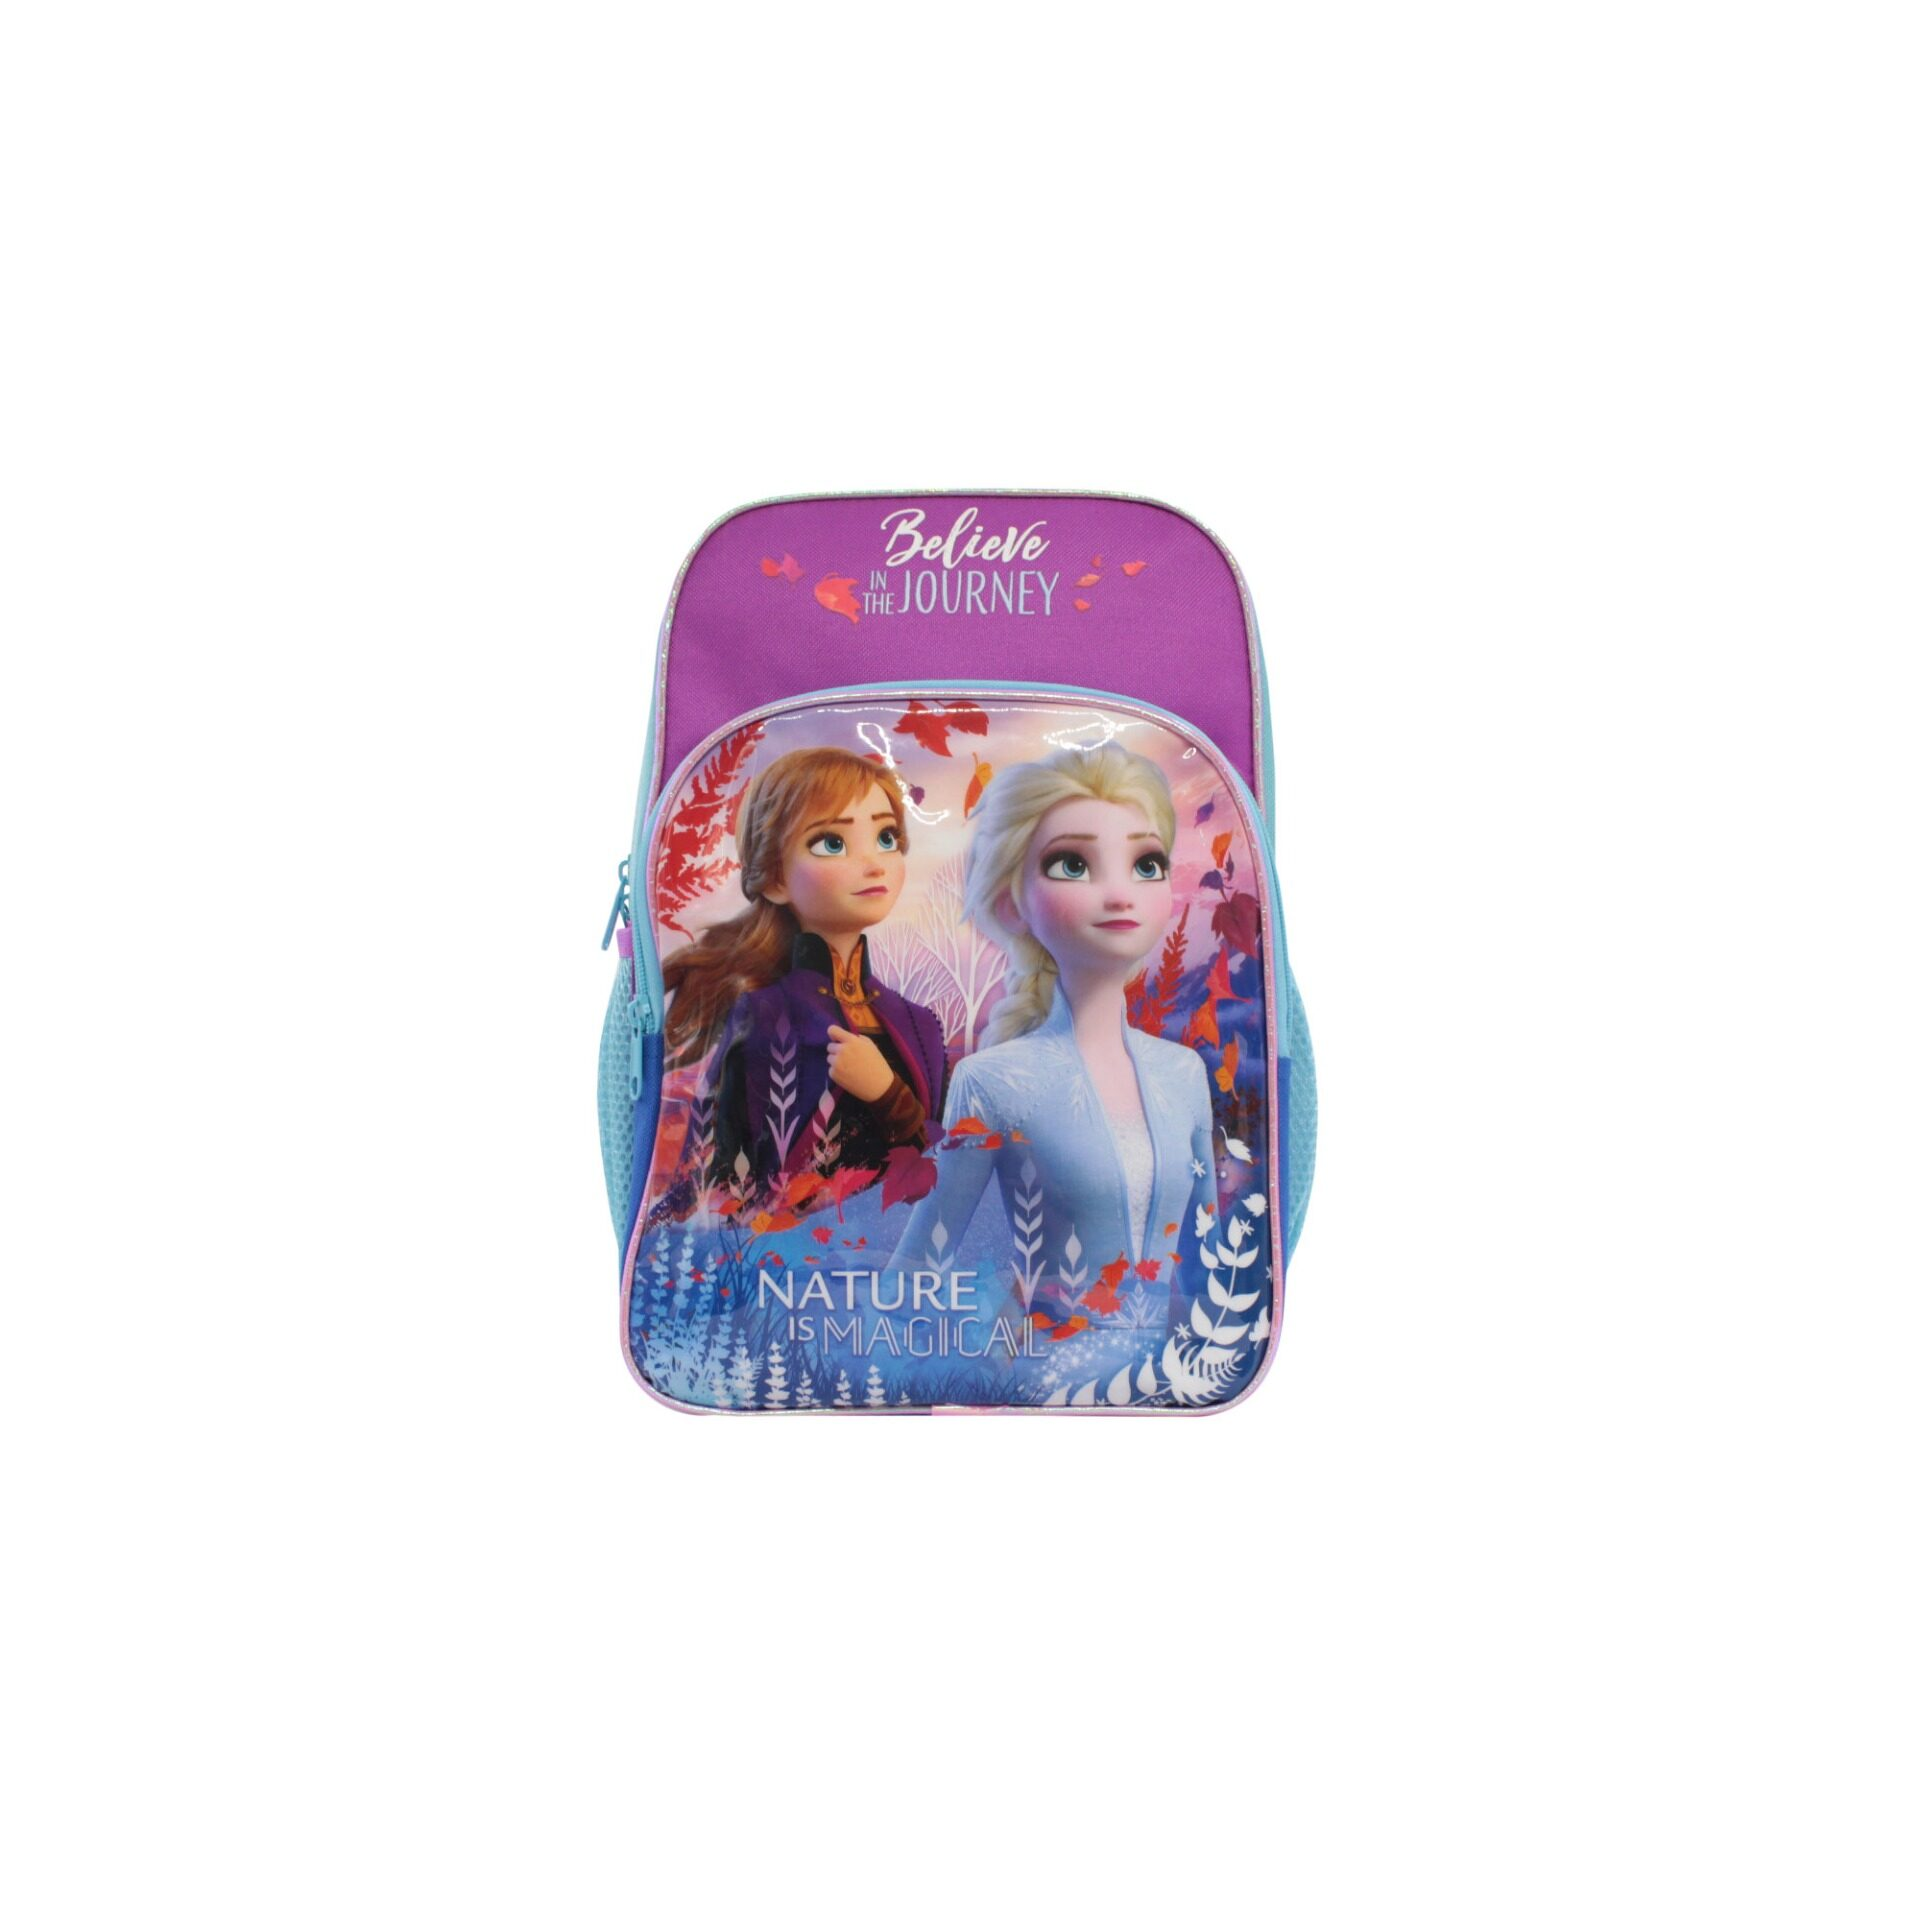 Disney Princess Frozen 2 Princess Elsa & Anna Nature Is Magical Girls 12 Inch Nylon School Backpack (Purple & Turqoise)